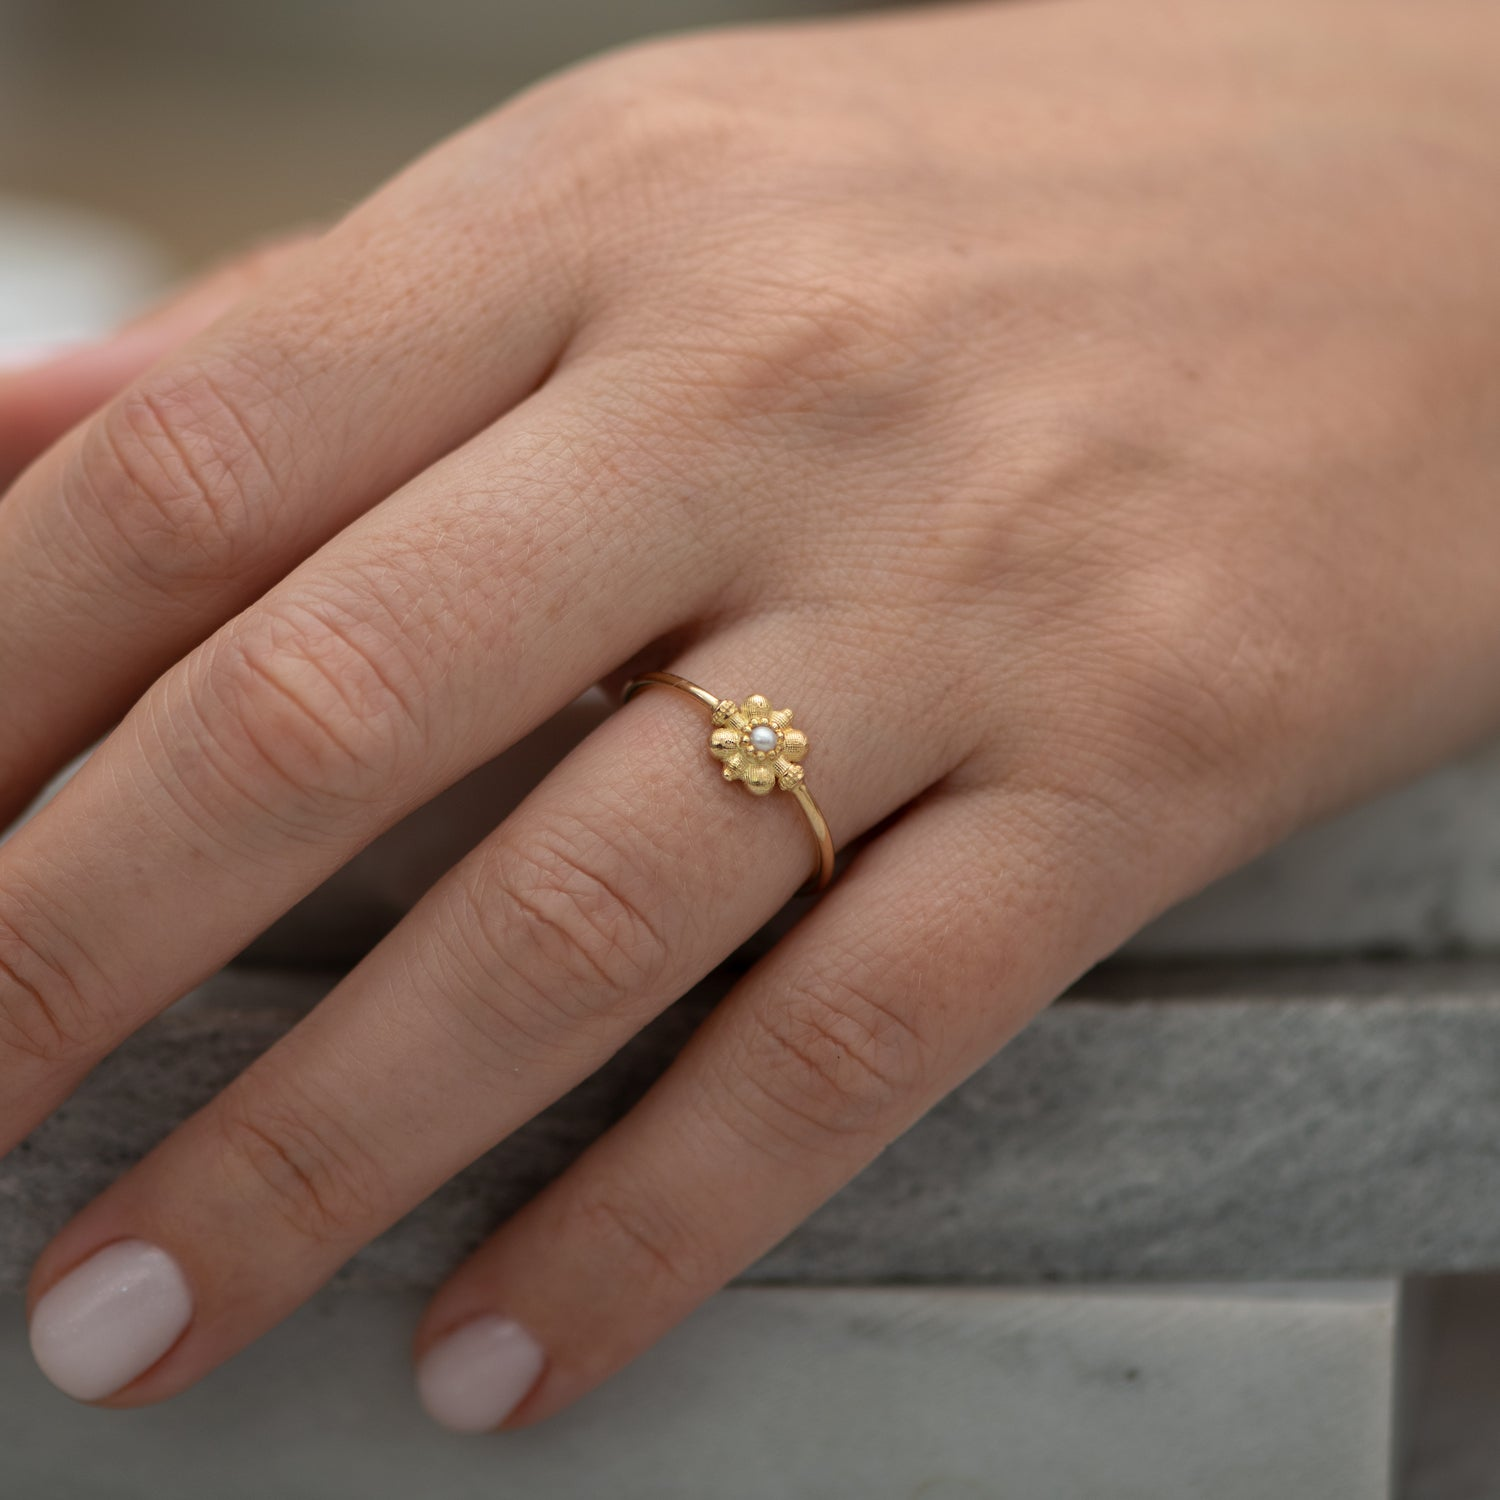 Dainty-Gold-Flower-Ring-Seed-Pearl-Ring